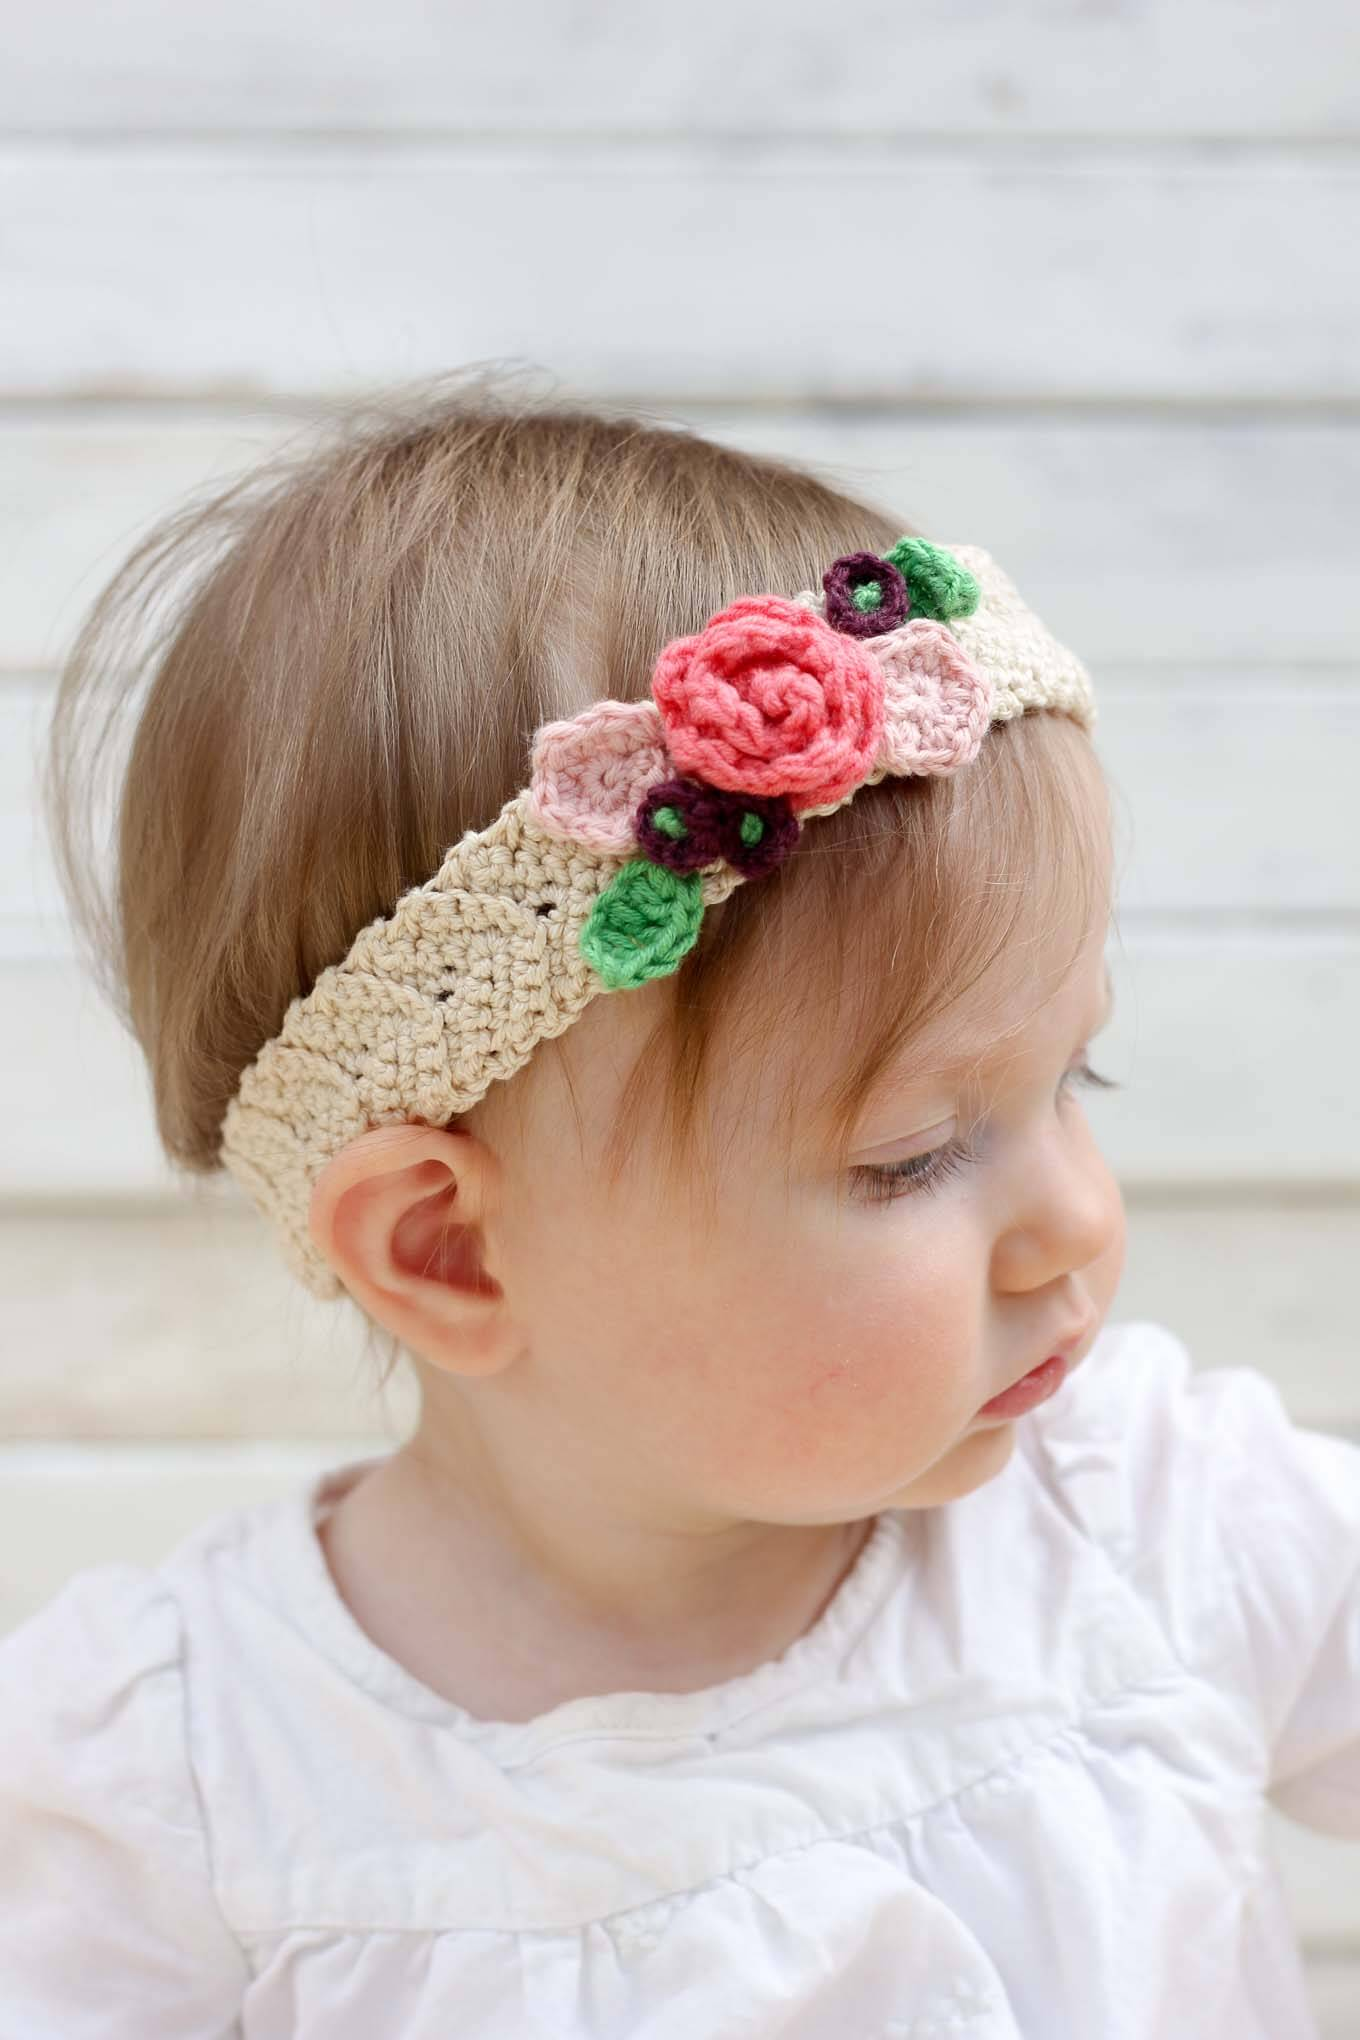 Free Patterns To Crochet Baby Headbands : Free Crochet Flower Headband Pattern (Baby, Toddler, Adult)